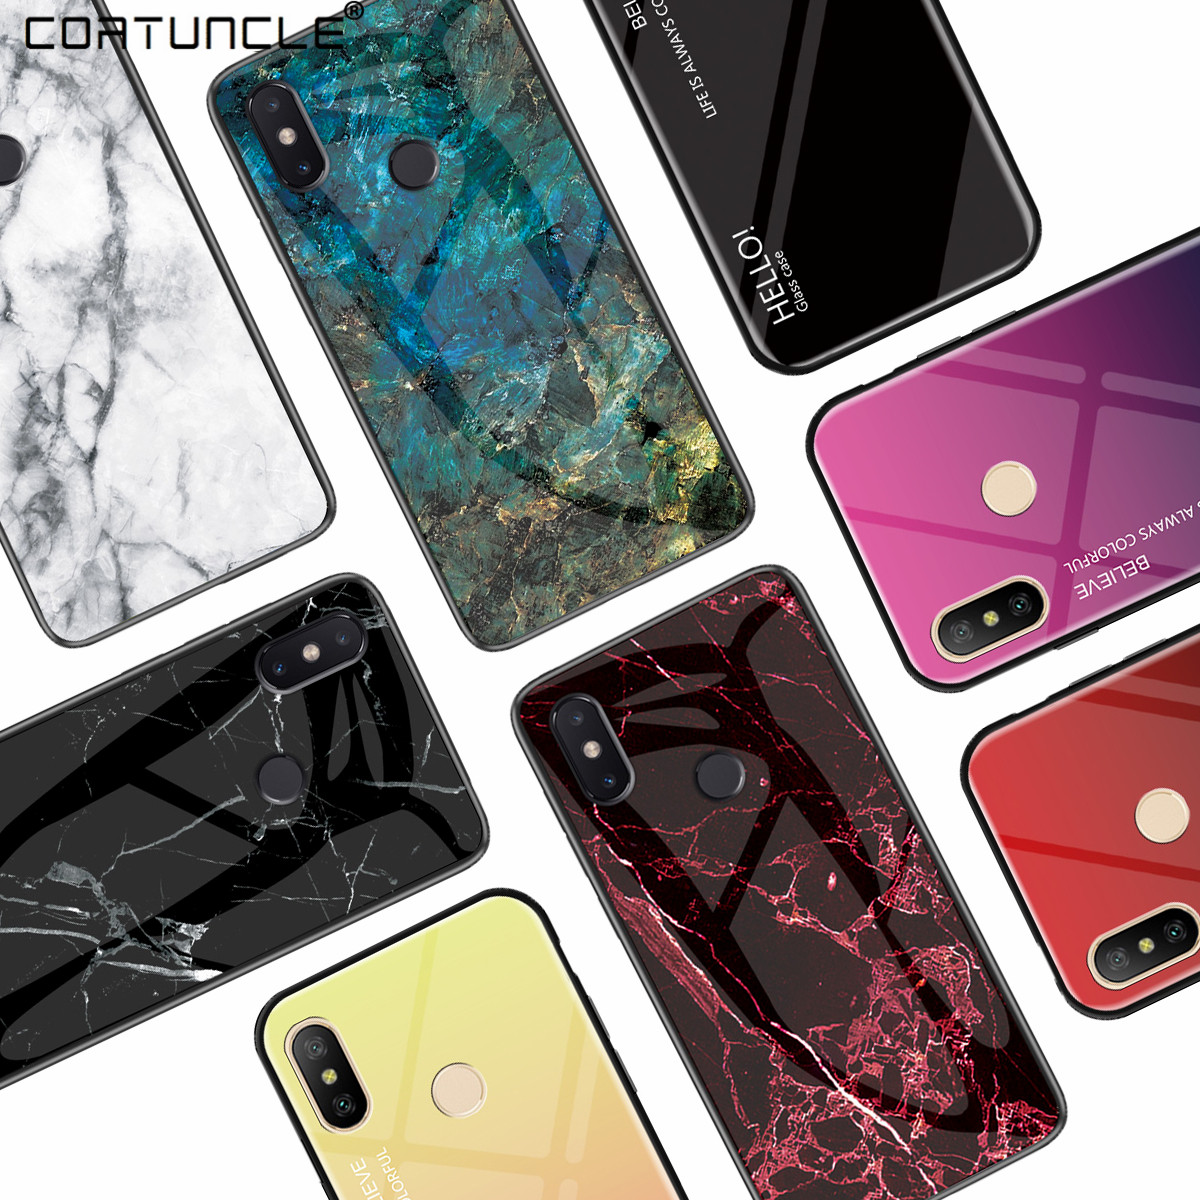 <font><b>Marble</b></font> Hard Tempered Glass For <font><b>Huawei</b></font> <font><b>P10</b></font> Lite <font><b>Case</b></font> Luxury Gradient Protective Back Cover <font><b>Huawei</b></font> <font><b>P10</b></font> P9 Plus Phone <font><b>Case</b></font> Cover image